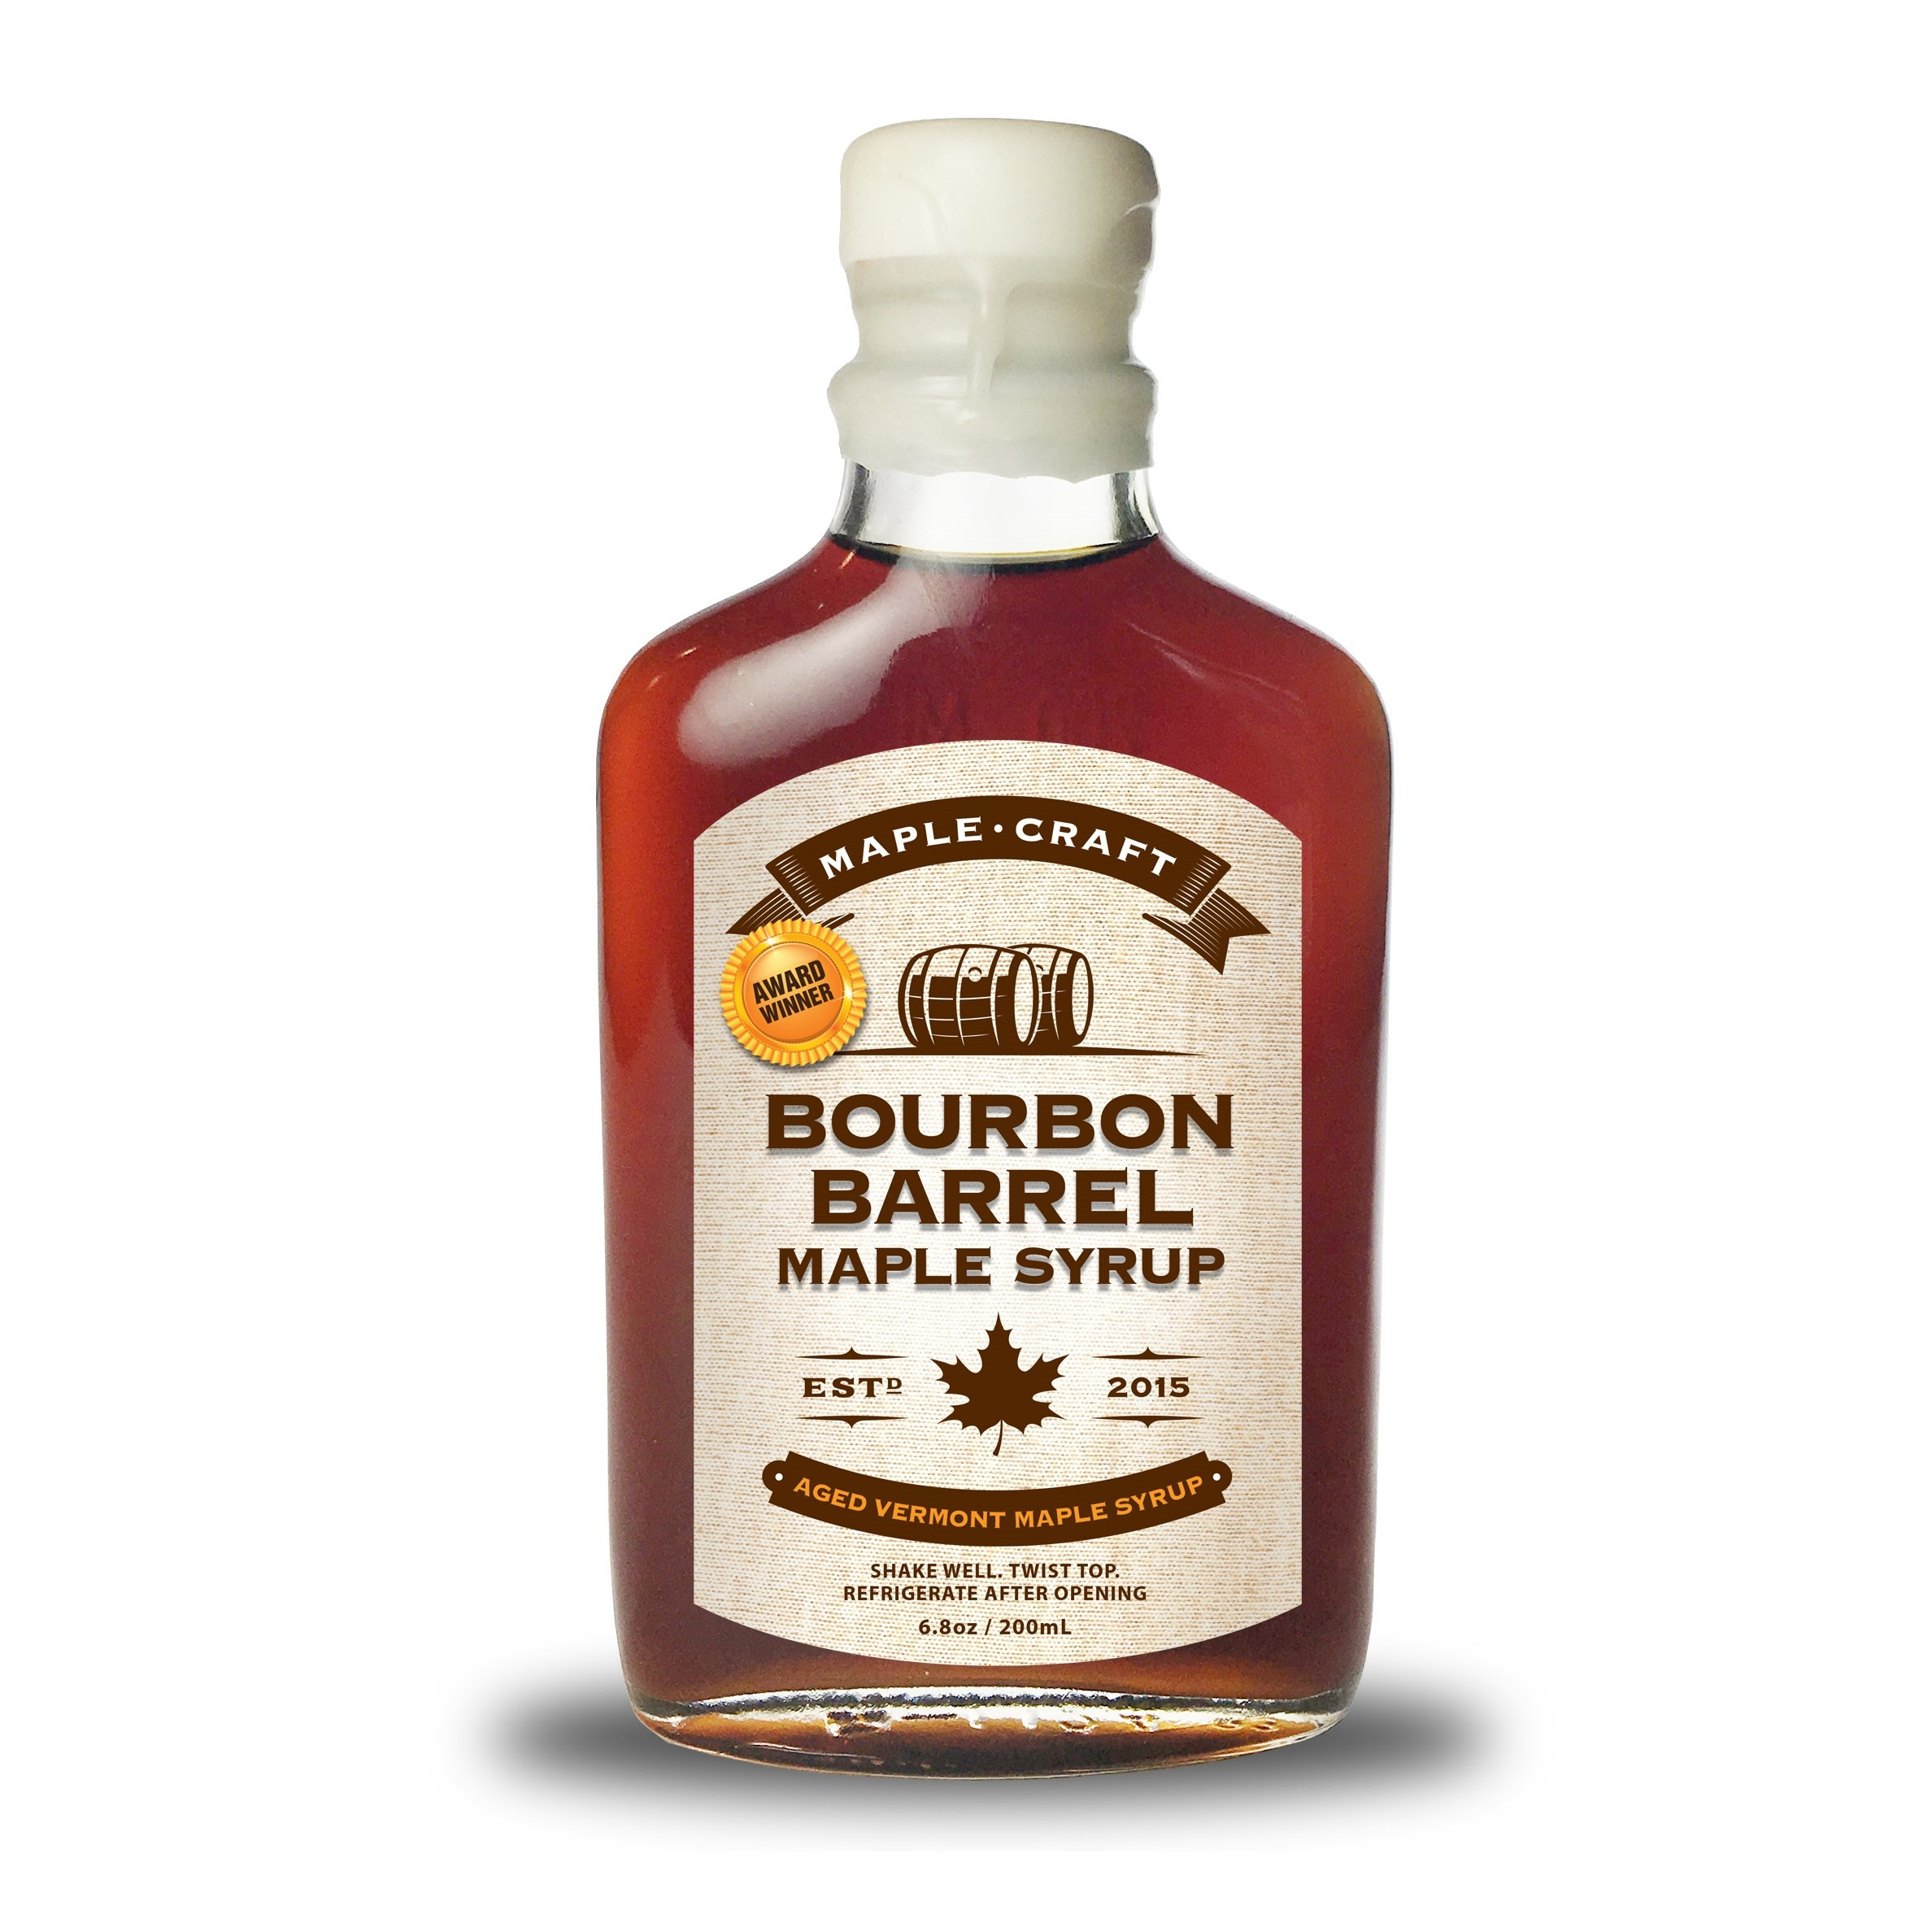 maple craft bourbon barrel flavored maple syrup hidden springs maple